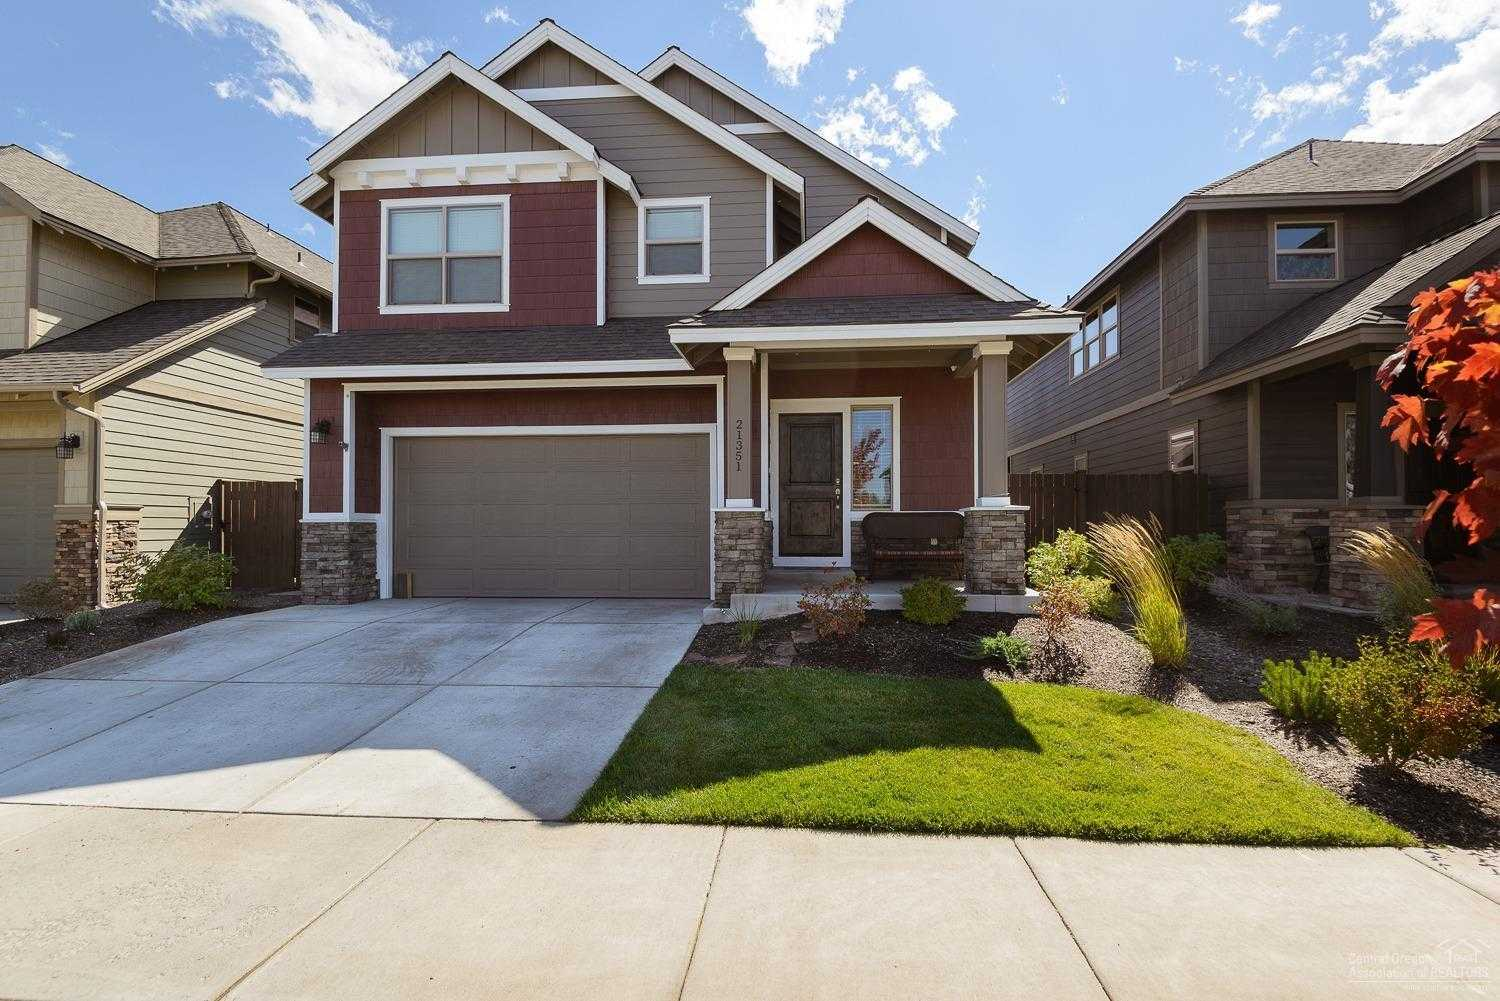 $425,000 - 3Br/3Ba -  for Sale in Bend